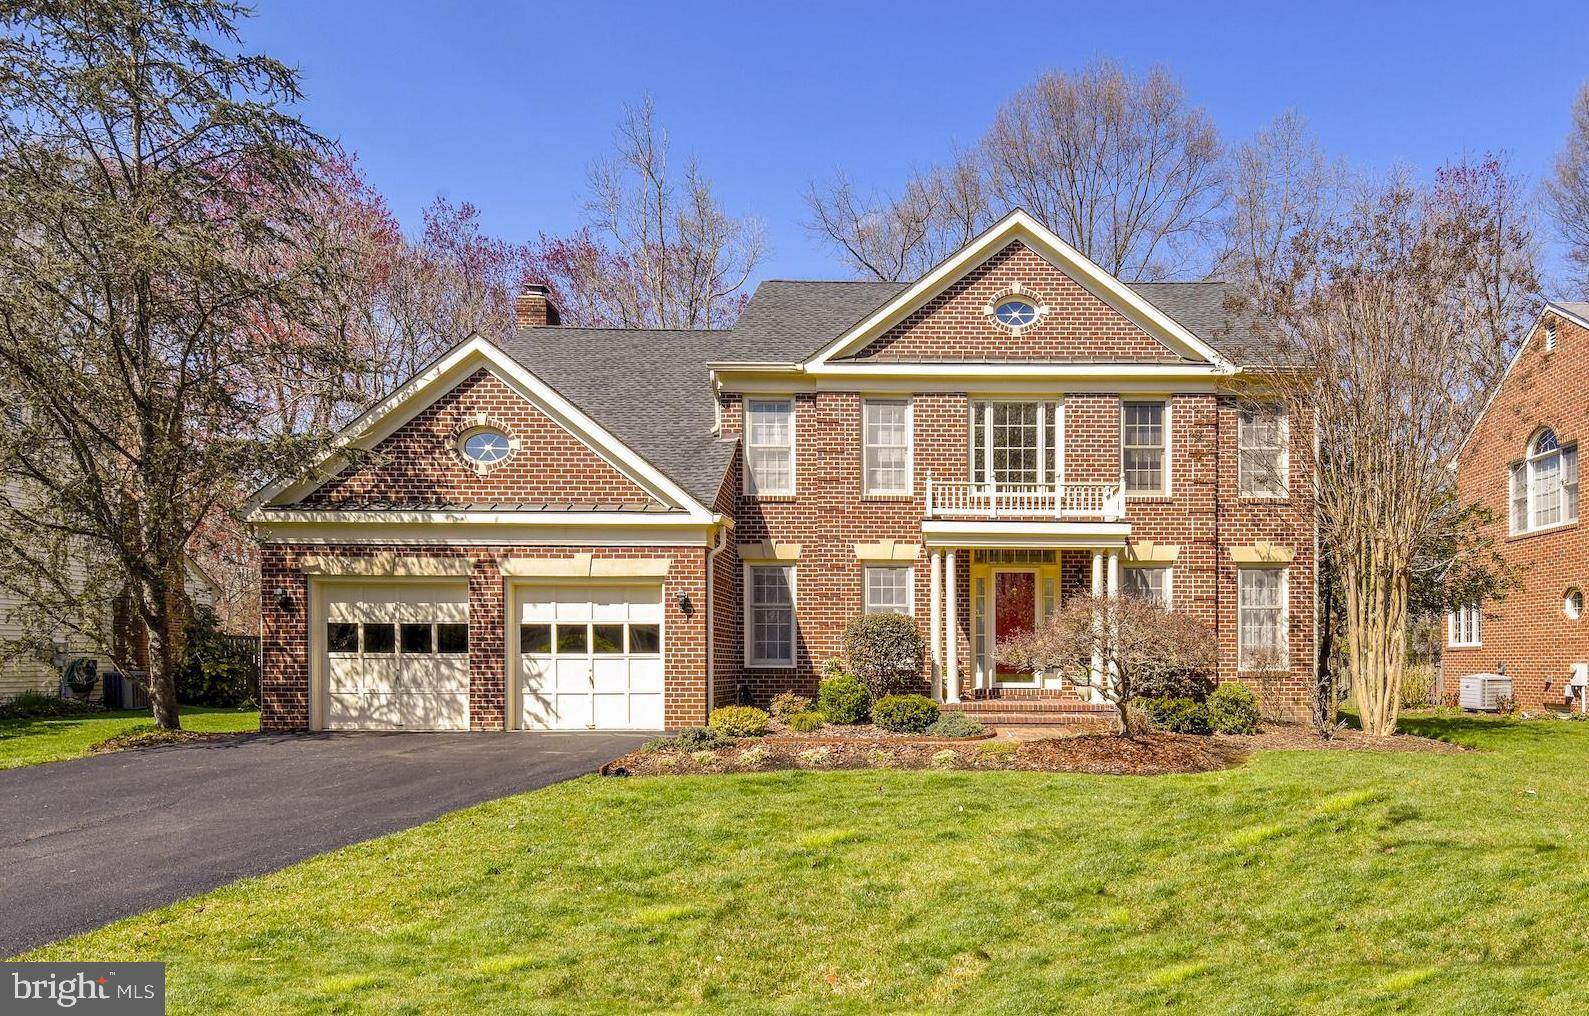 This stately brick front Colonial has been thoughtfully maintained and features many attractive renovations.  Recent updates were carefully completed with premium materials by experienced professionals.  A cedar-edged brick walkway leads to the columned front porch with new portico and railings.  Both formal and casual spaces for entertaining are found on the main level where an open concept kitchen, family room and adjacent sunroom are the heart of this home - each space contributing a particular ambiance.  The completely renovated kitchen is complemented by a breakfast room beaming with light from the bay window.  Highlights of the refreshed kitchen include granite counters, Travertine backsplash, pendant and chandelier lighting fixtures, premium porcelain floors, and a granite bar with glass-front cabinets.  The kitchen steps down into the cozy family room with a wood-burning fireplace and leads to the adjacent sunroom. Vaulted ceilings and a Palladian window create an airy, serene space that overlooks the landscaped backyard with a perfect view of the sunset from the large deck.  On the upper level, double doors lead to a spacious master suite with vaulted ceilings where light pours in from double skylights.  A charming sitting area, two large walk-in closets, double vanities with new lighting fixtures, a jacuzzi tub, and an expanded tile shower complete this suite.  There is no shortage of storage space at 8203 Mack St.  The home offers many large closets, a finished basement with two large rooms for stowing items, and a sizable two car garage.